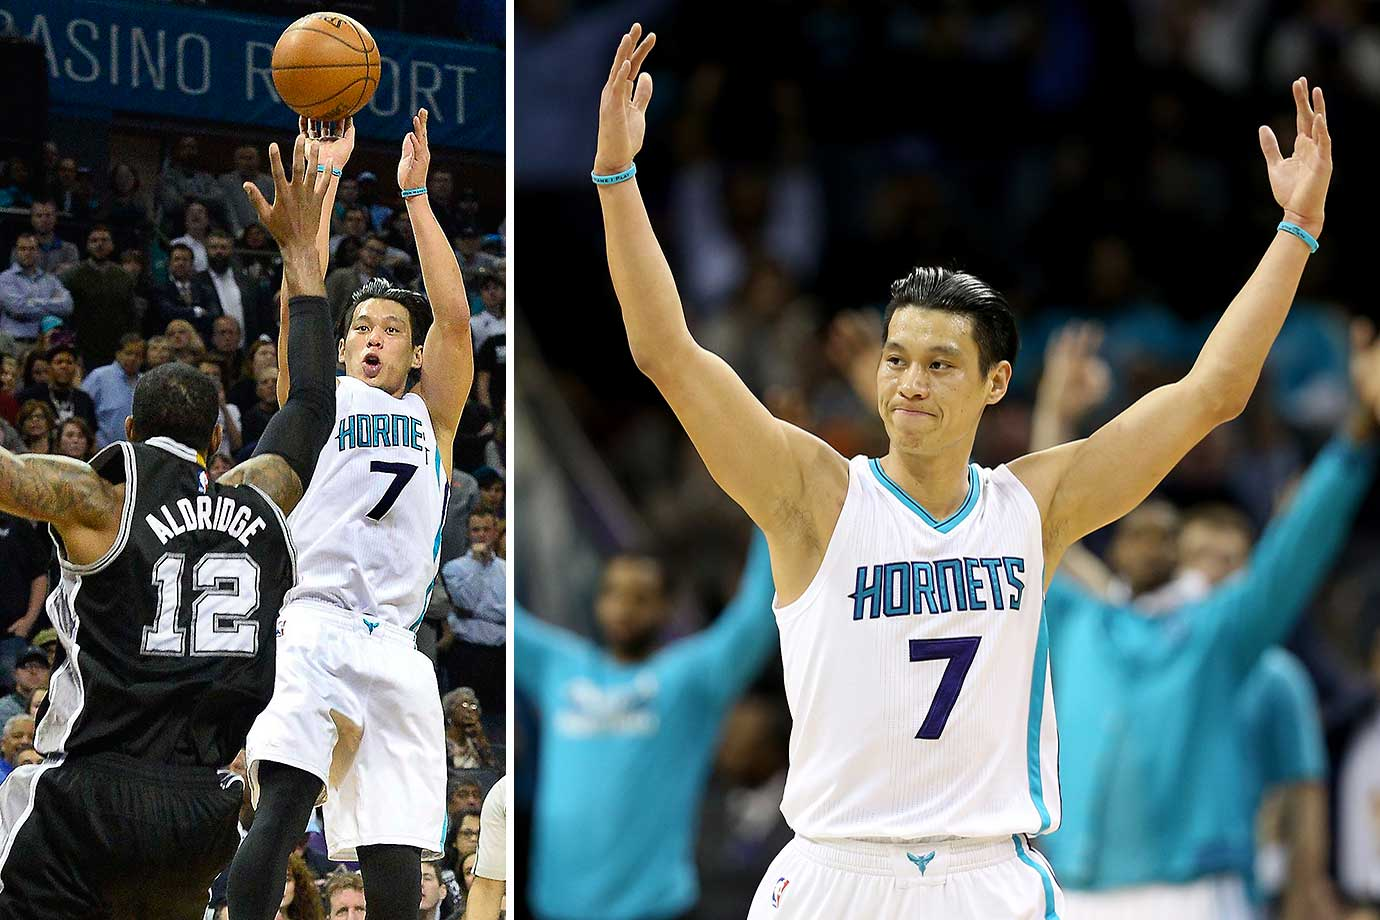 Jeremy Lin of the Charlotte Hornets reacts after making a basket in a 91-88 win over the San Antonio Spurs, who blew a 23-point lead.